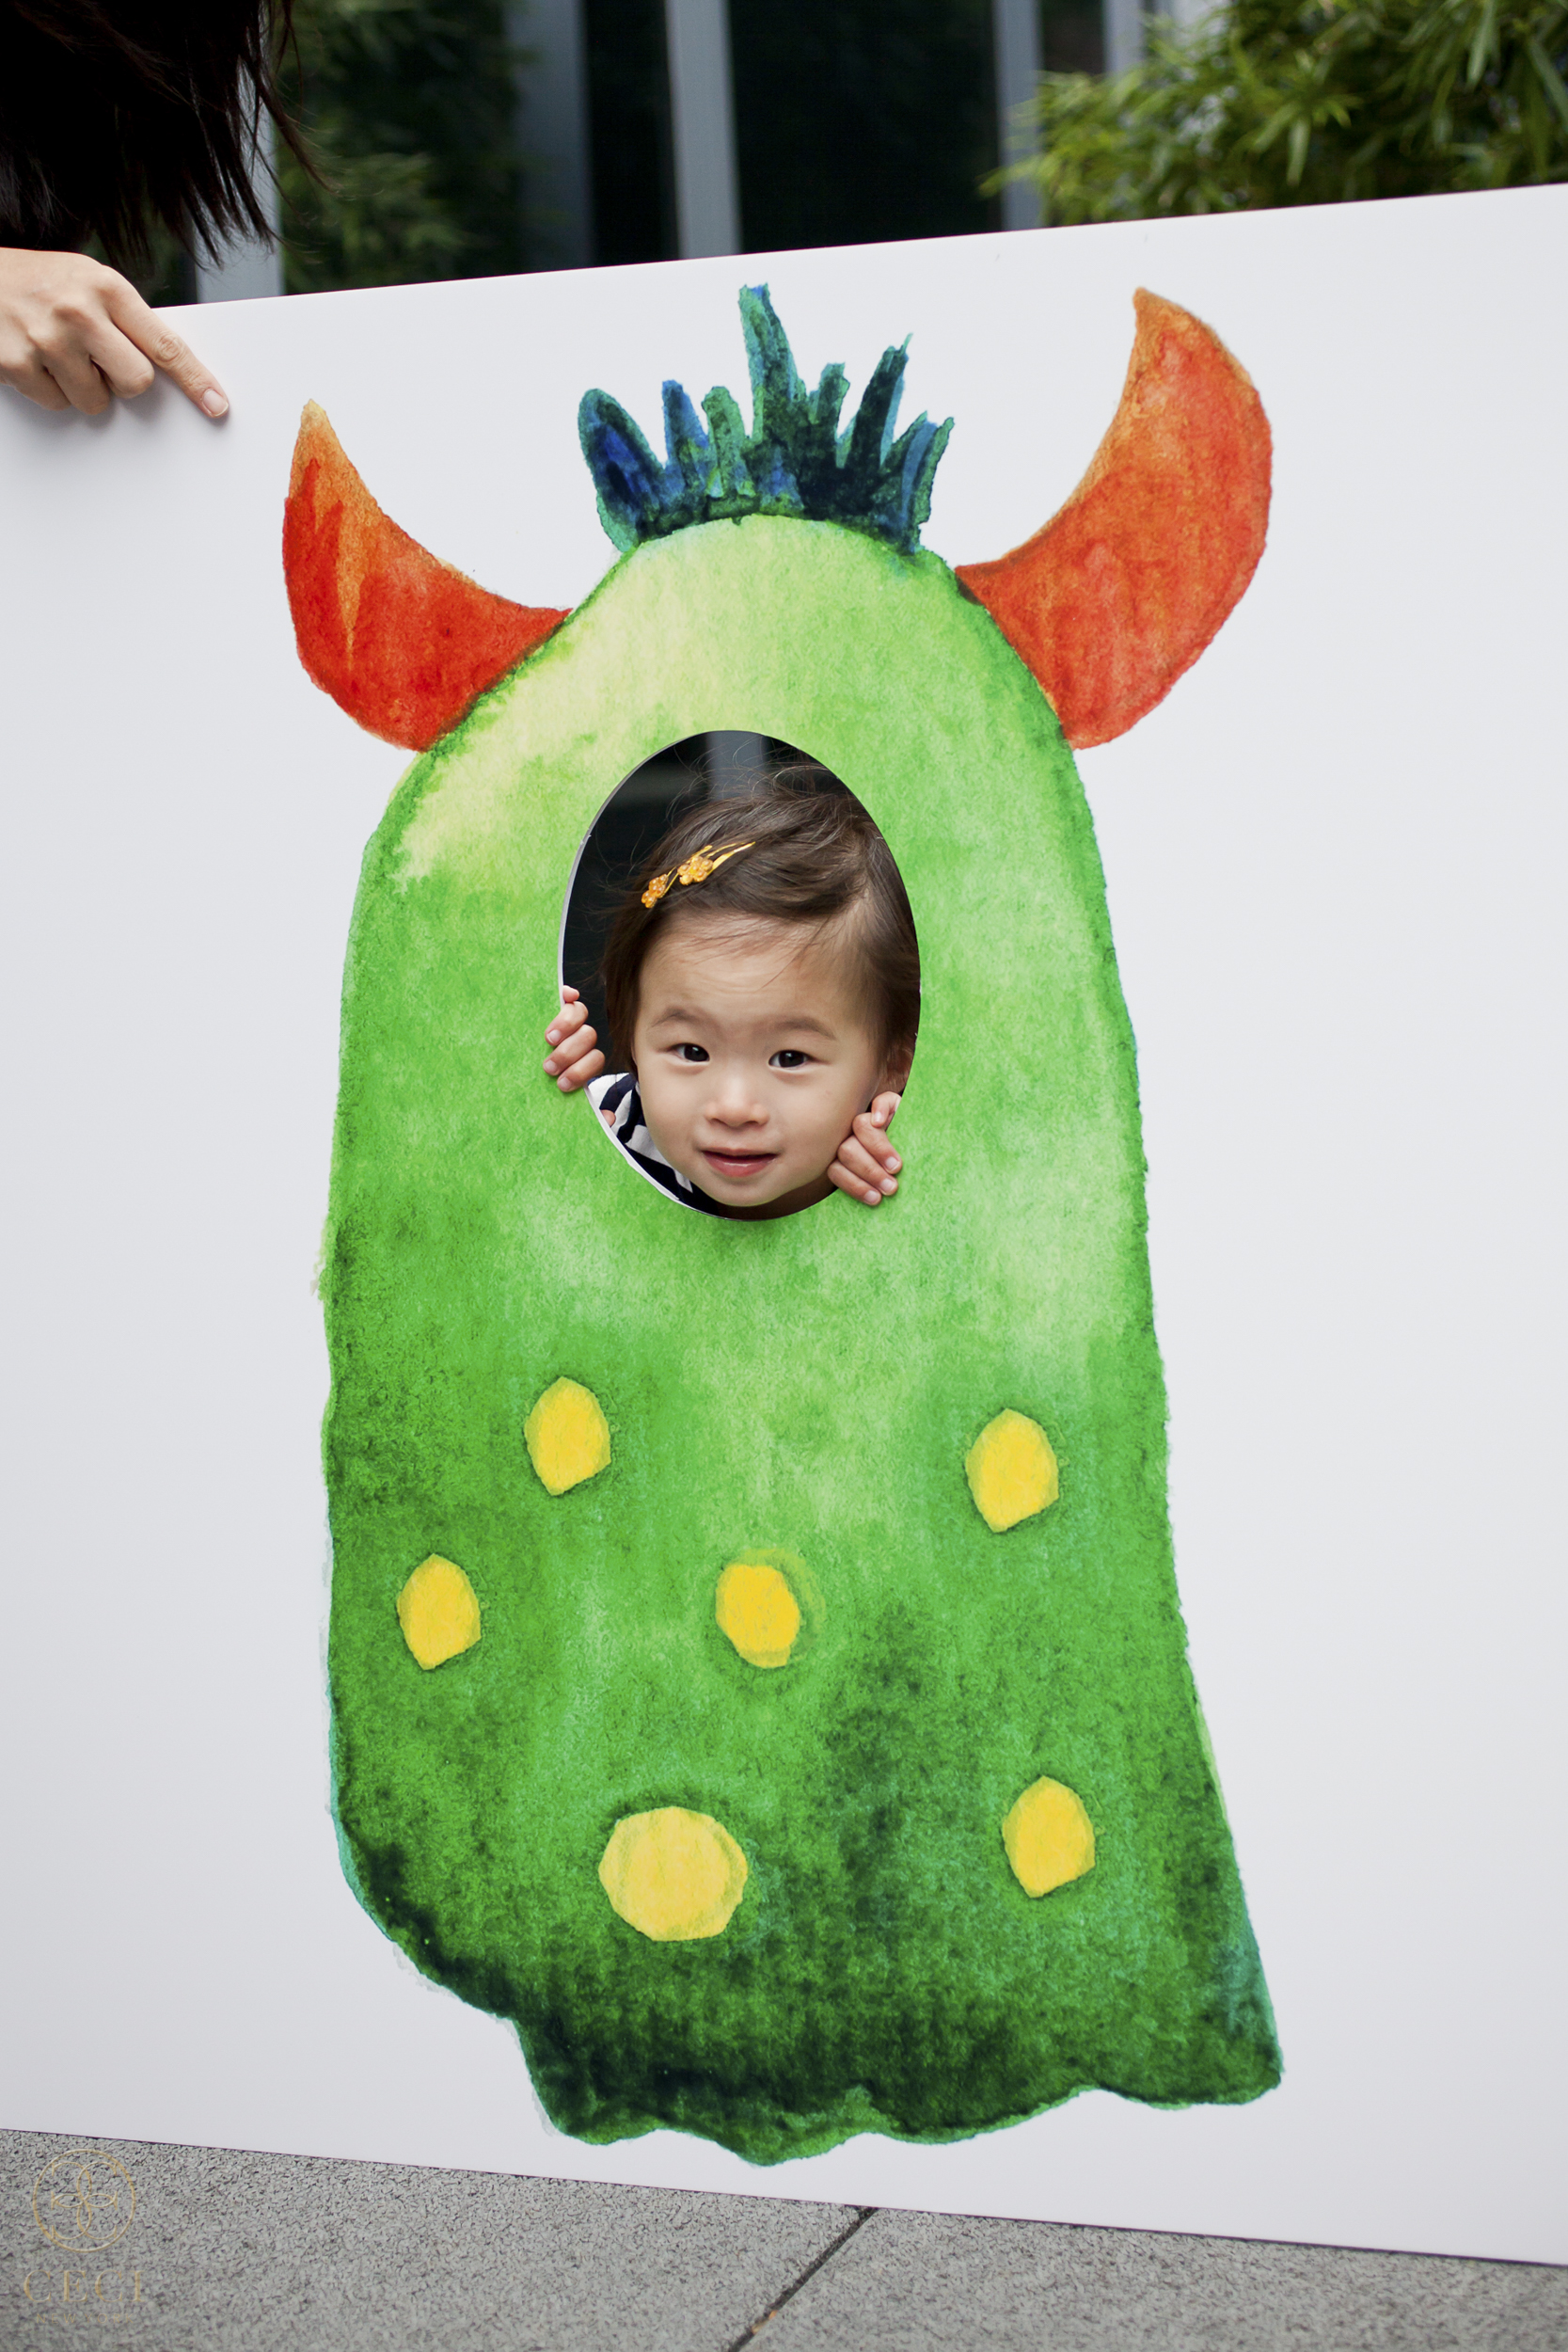 ceci-johnson-mason-birthday-party-2-second-new-york-city-monster-party-theme-kids-cute-creative-characters-37.jpg